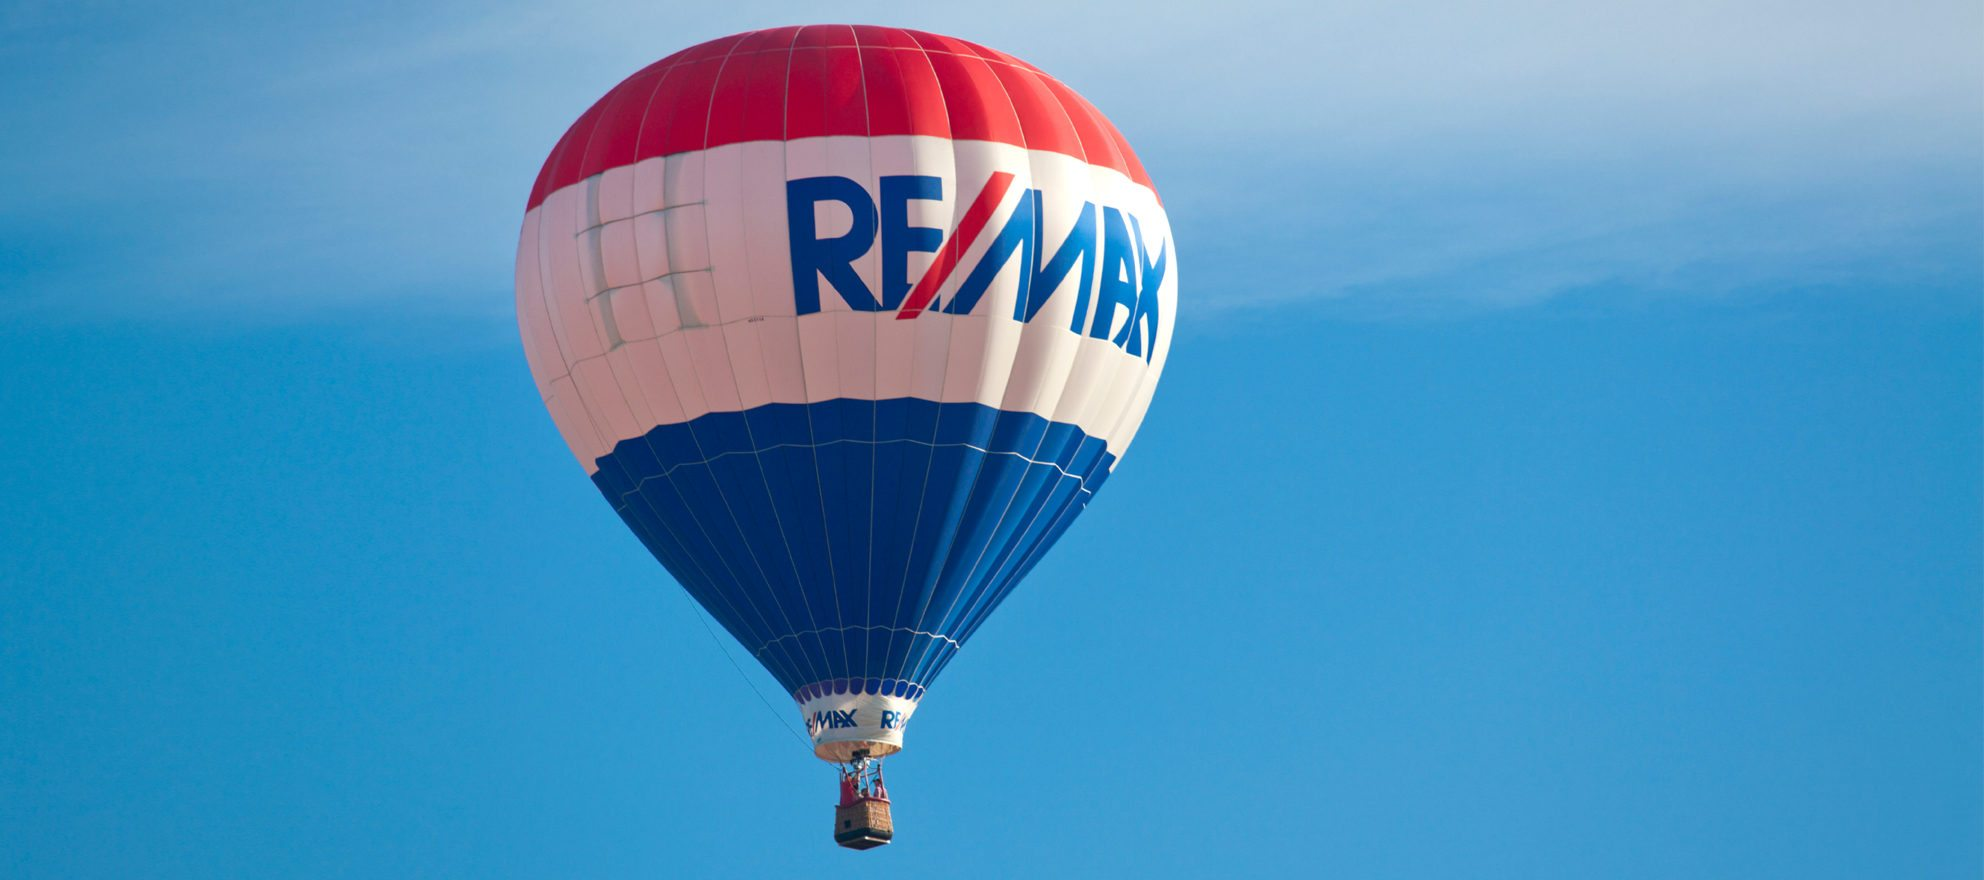 re/max franchise buy-backs